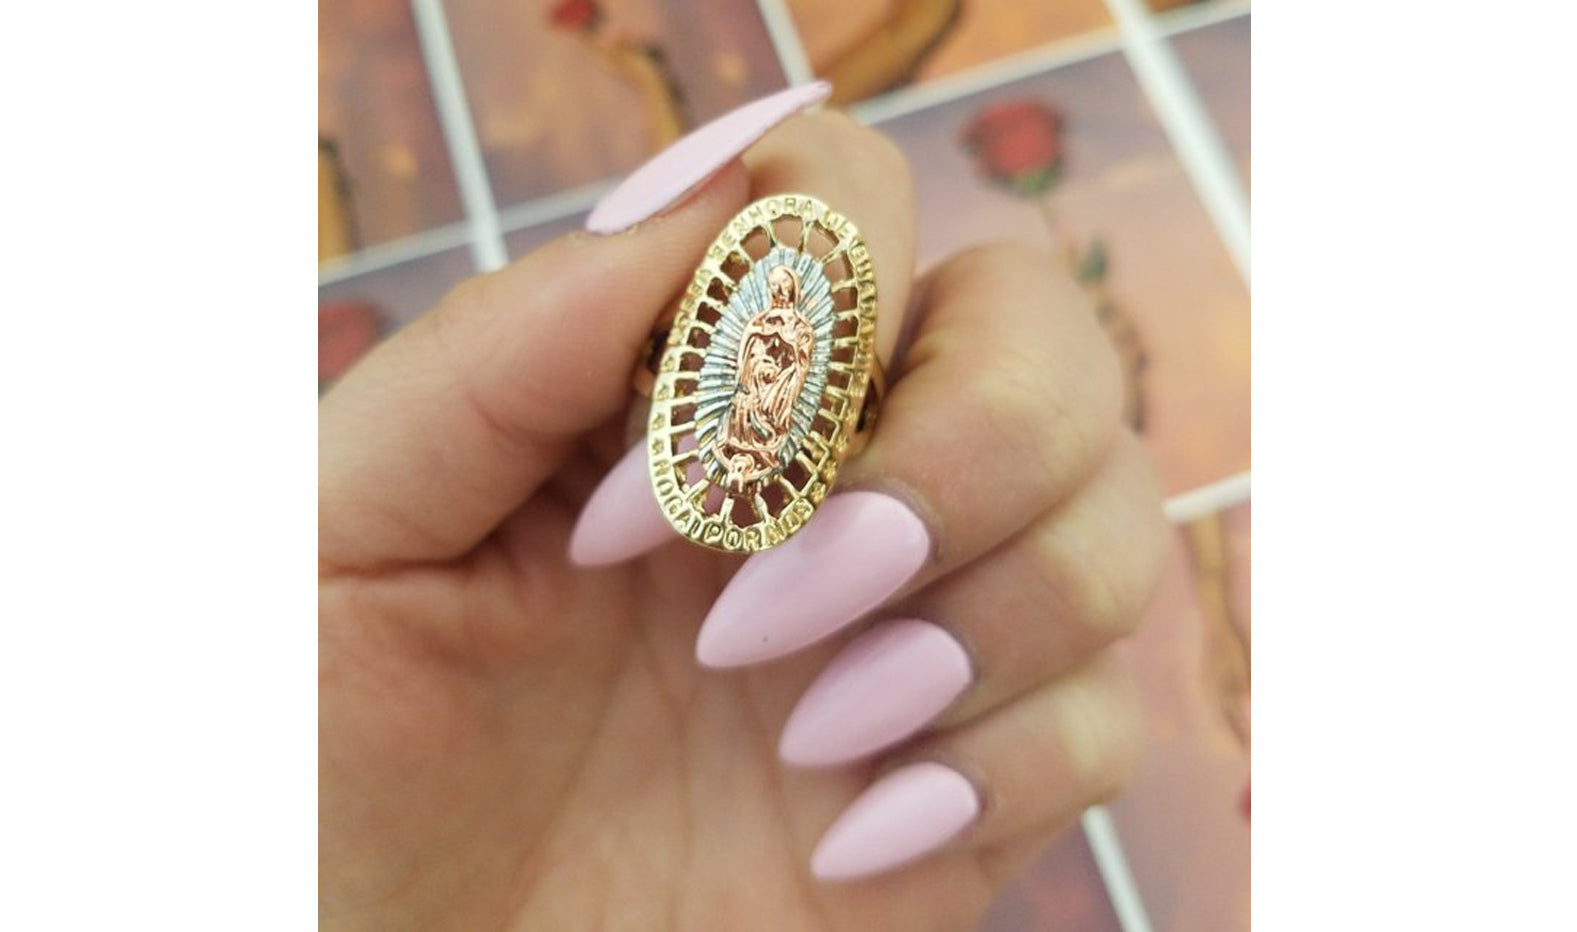 Tri Gold Virgencita gold plated ring. Latina jewelry, Mexican jewelery